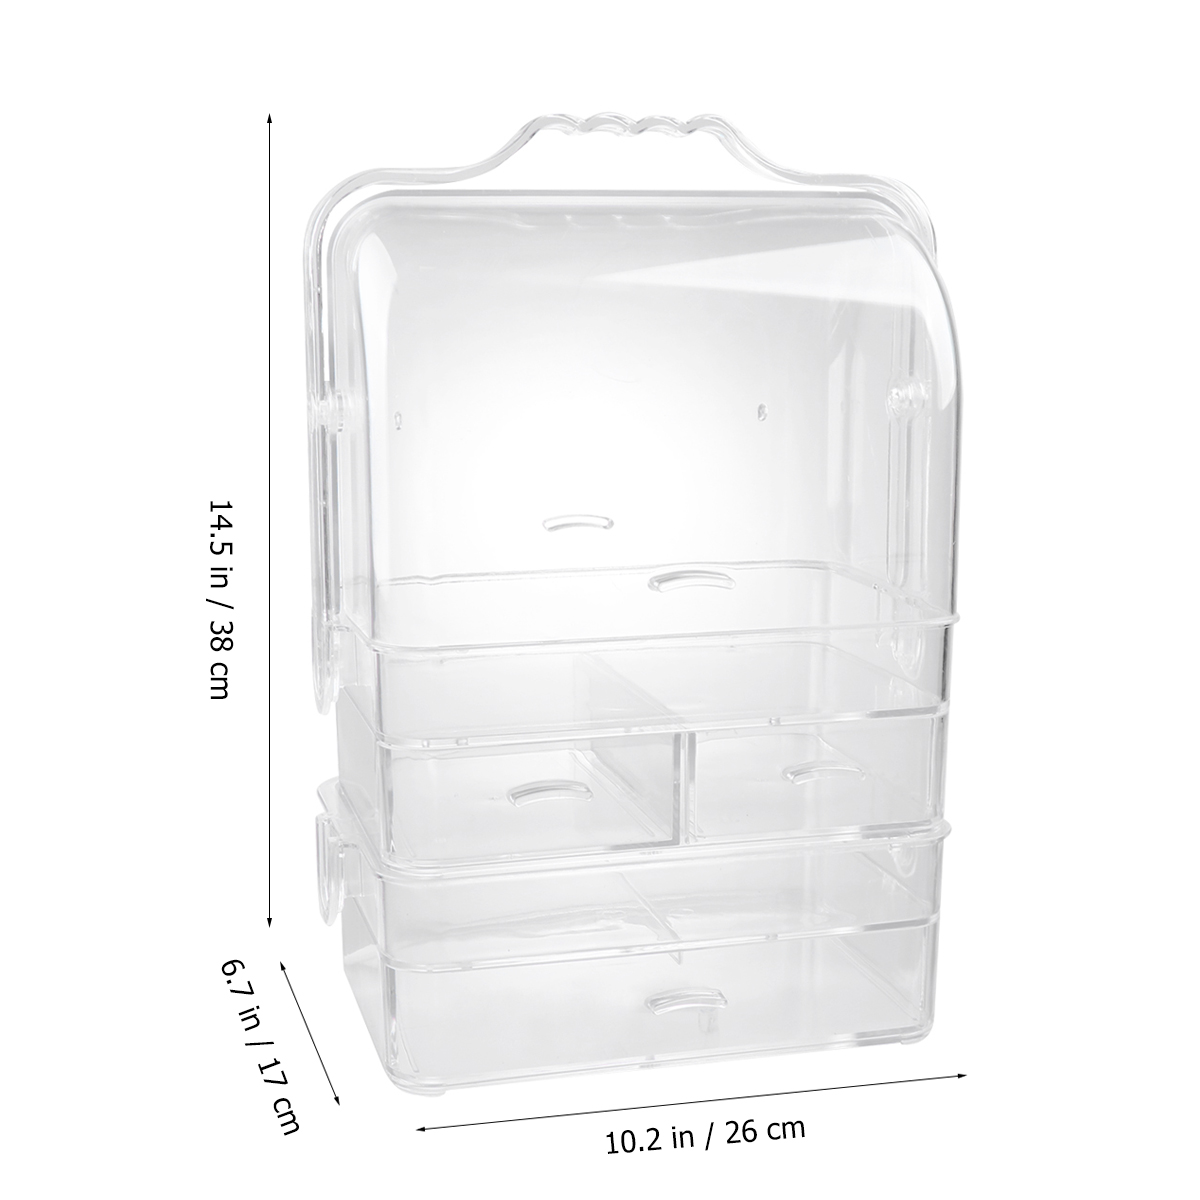 Acrylic Household Three layer Storage Cabinet Desktop Drawer font b Closet b font Multifunction Dustproof Cosmetic